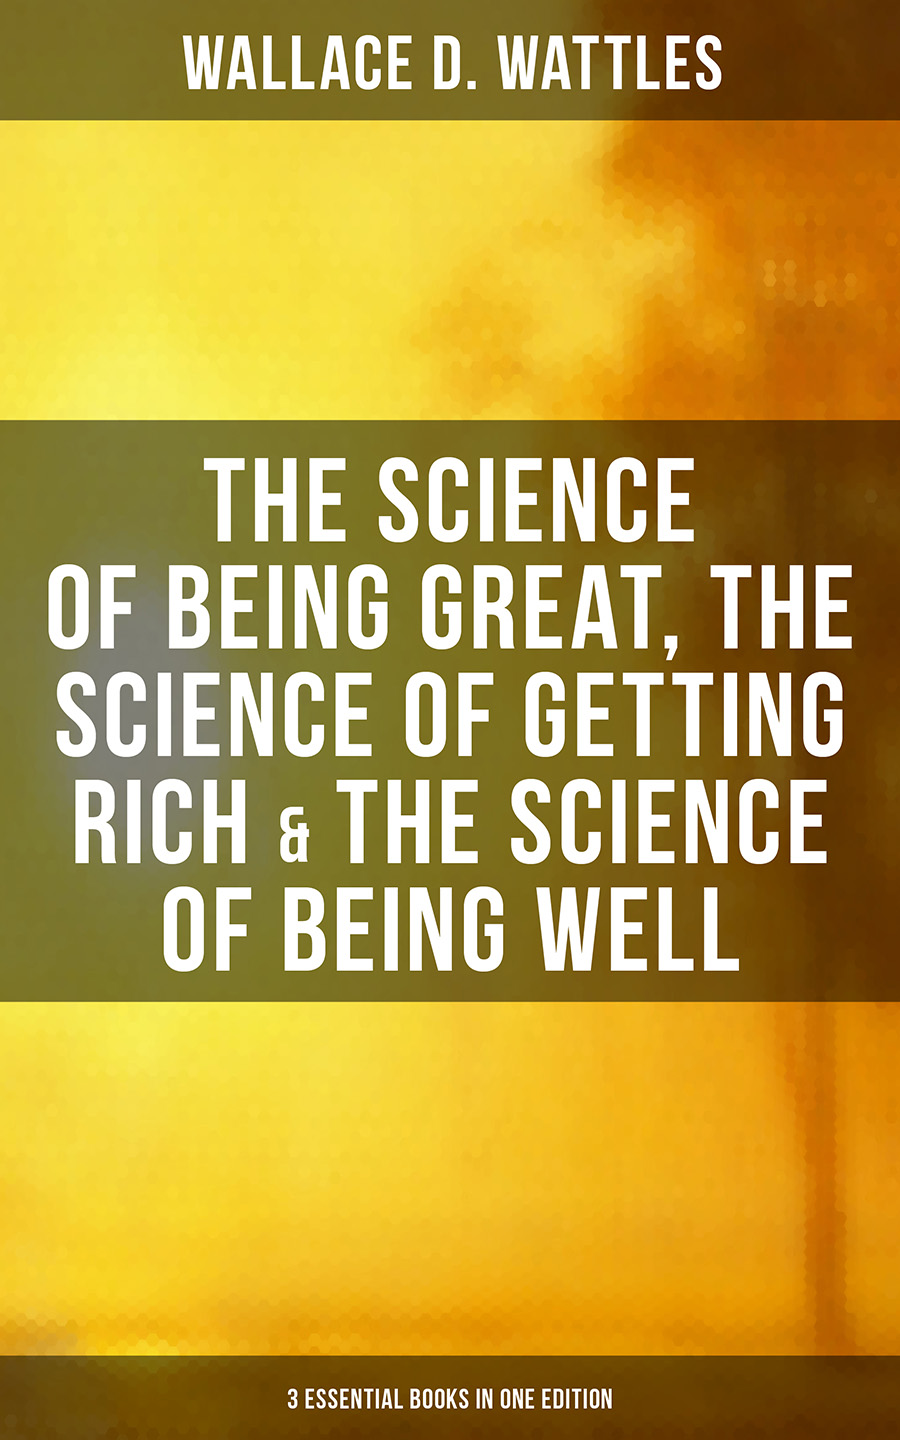 Wallace D. Wattles Wallace D. Wattles: The Science of Being Great, The Science of Getting Rich & The Science of Being Well (3 Essential Books in One Edition) все цены